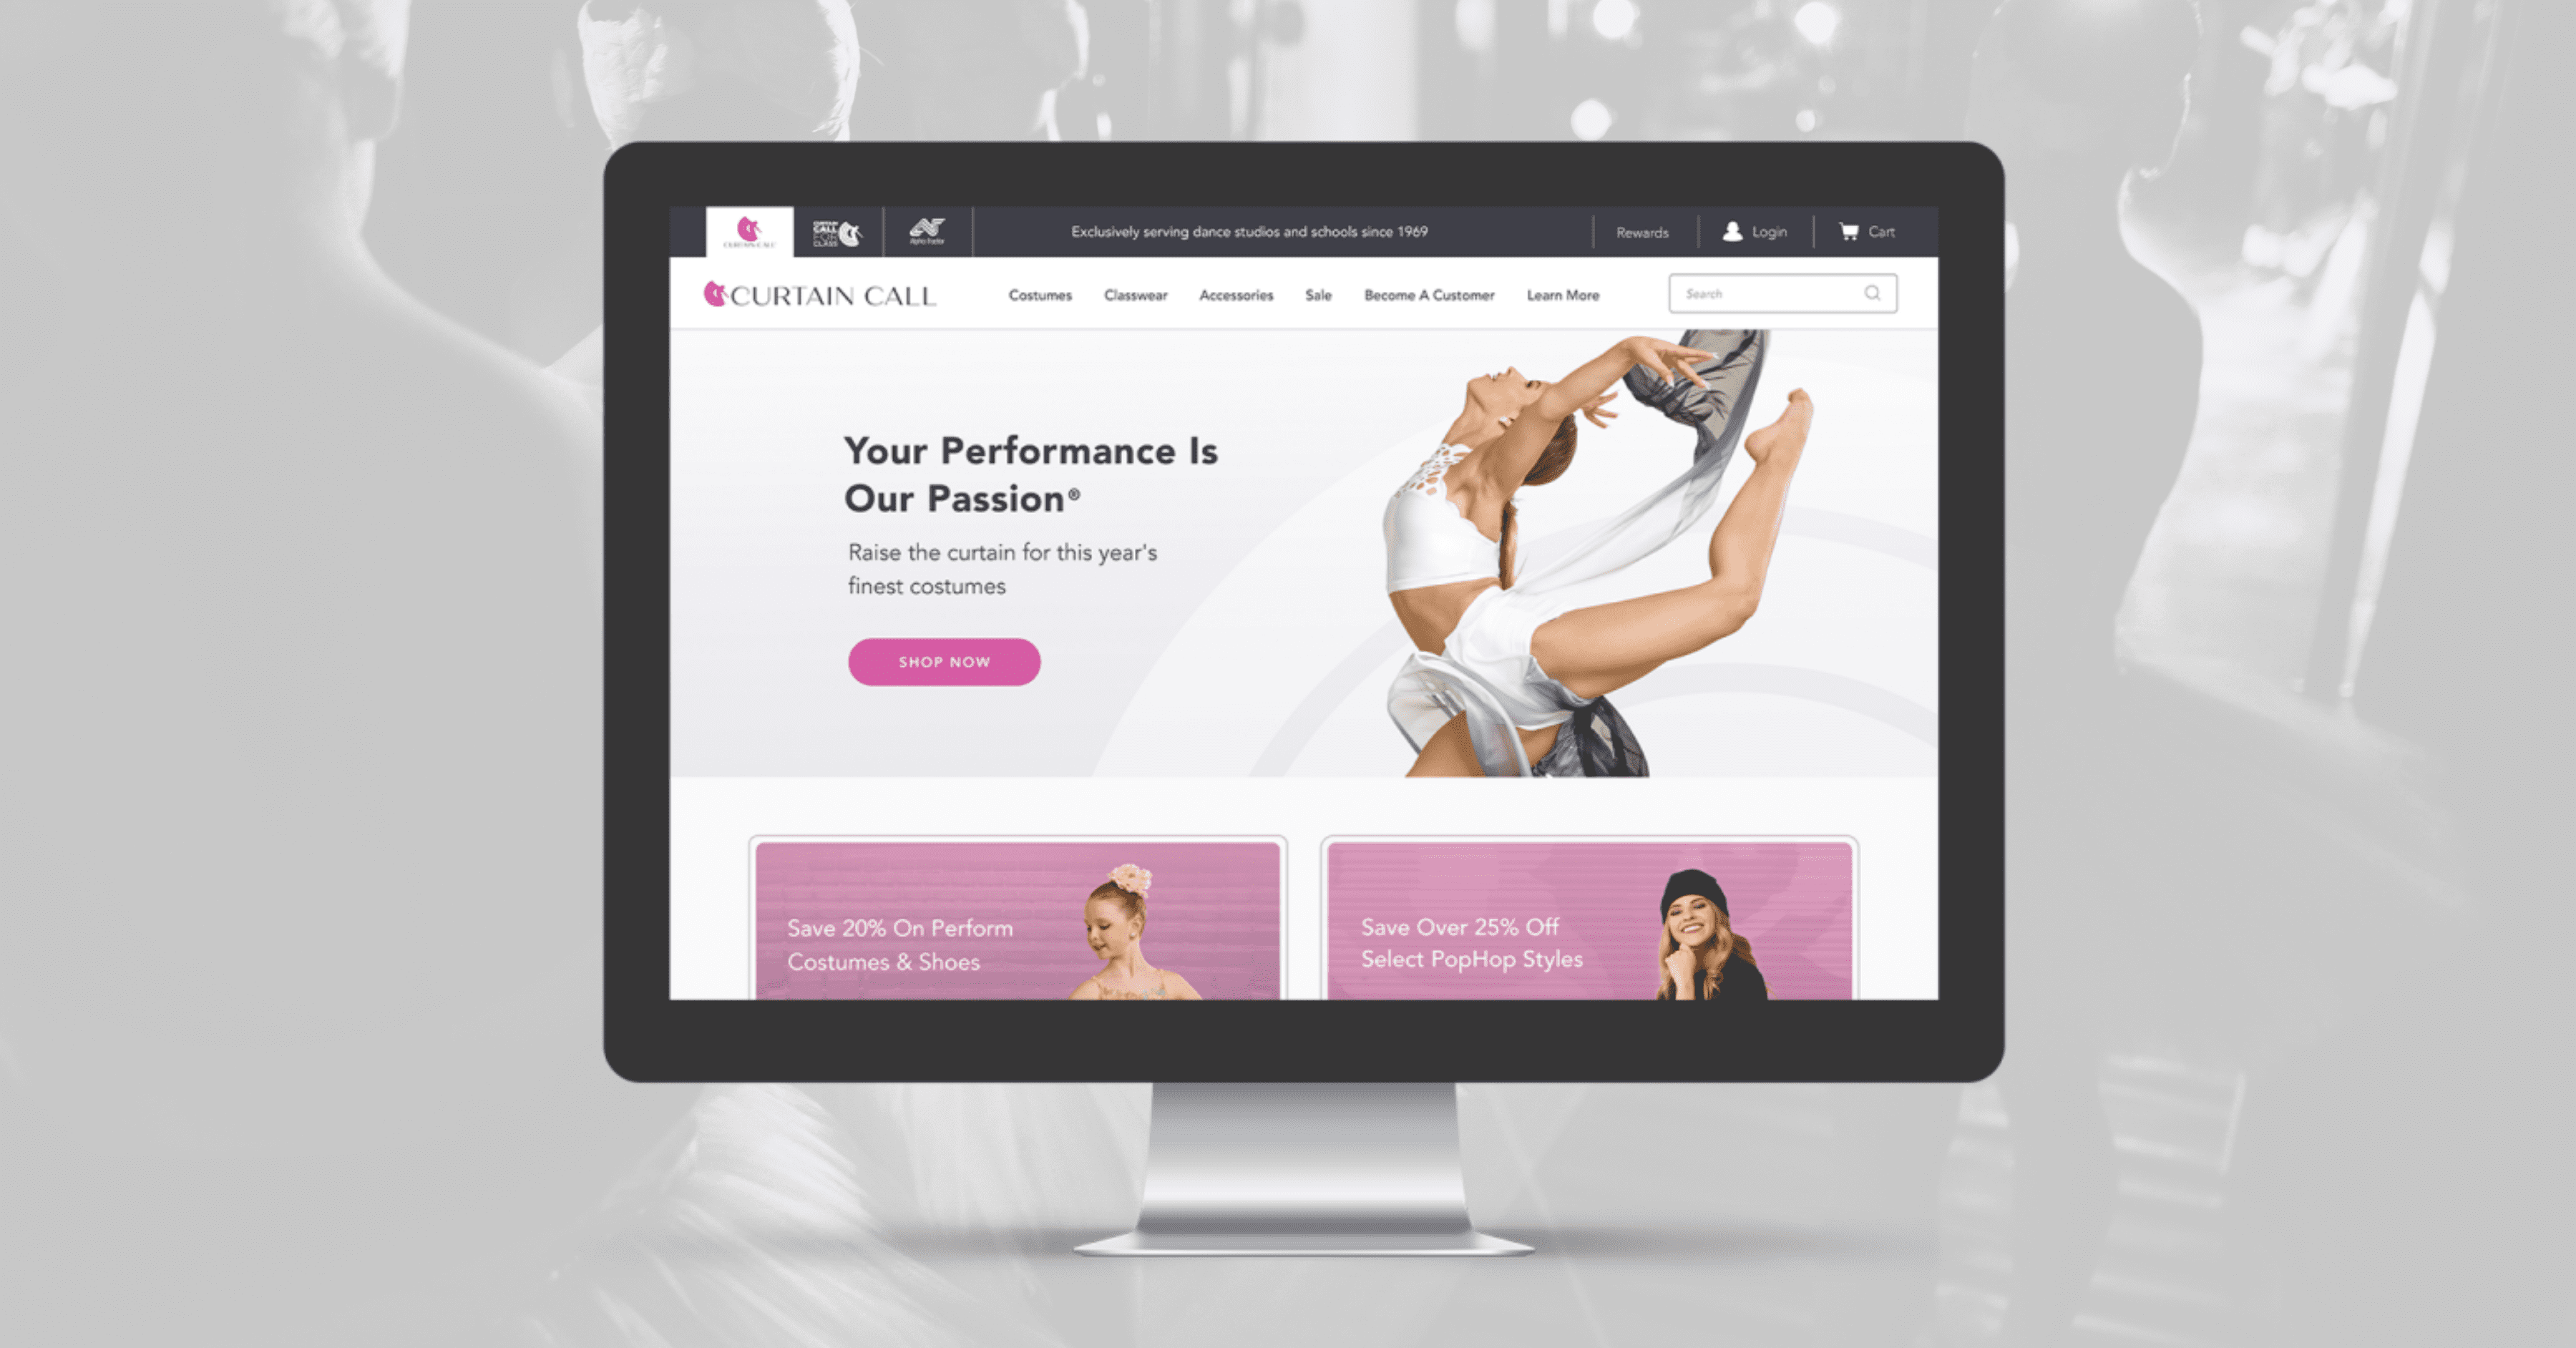 Website Design Before & After: Transitioning To BigCommerce